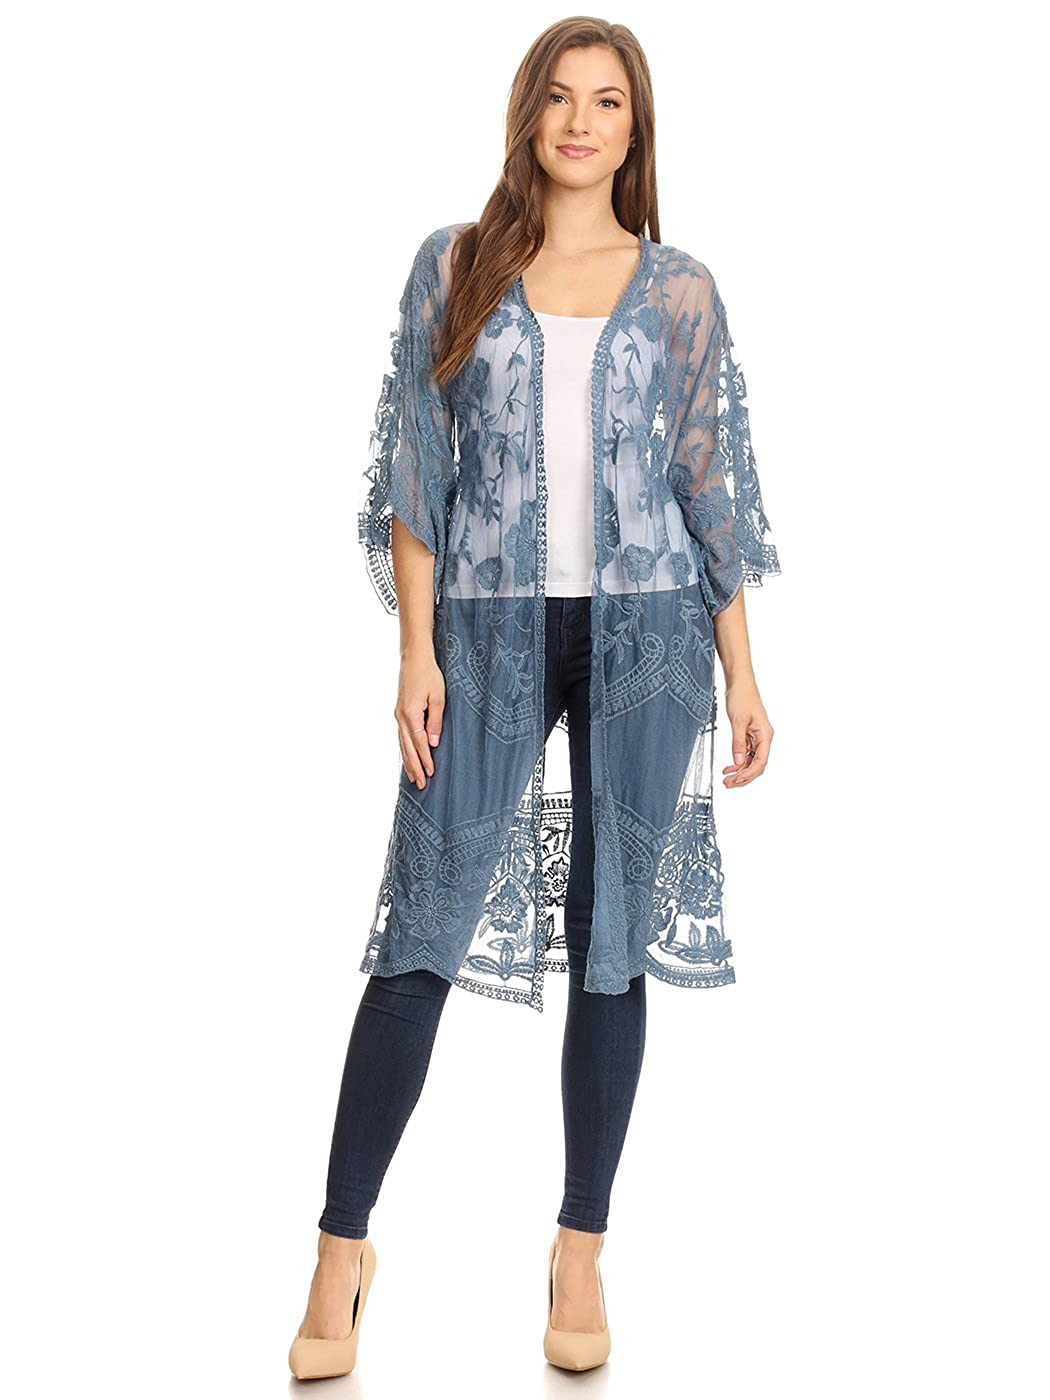 Women Lace Embroidery Kimono Blouse Stylish Mesh Sheer See Through Beach Cardigan Bikini Cover Up Wrap Beachwear Long Blouse New Superior Materials Blouses & Shirts